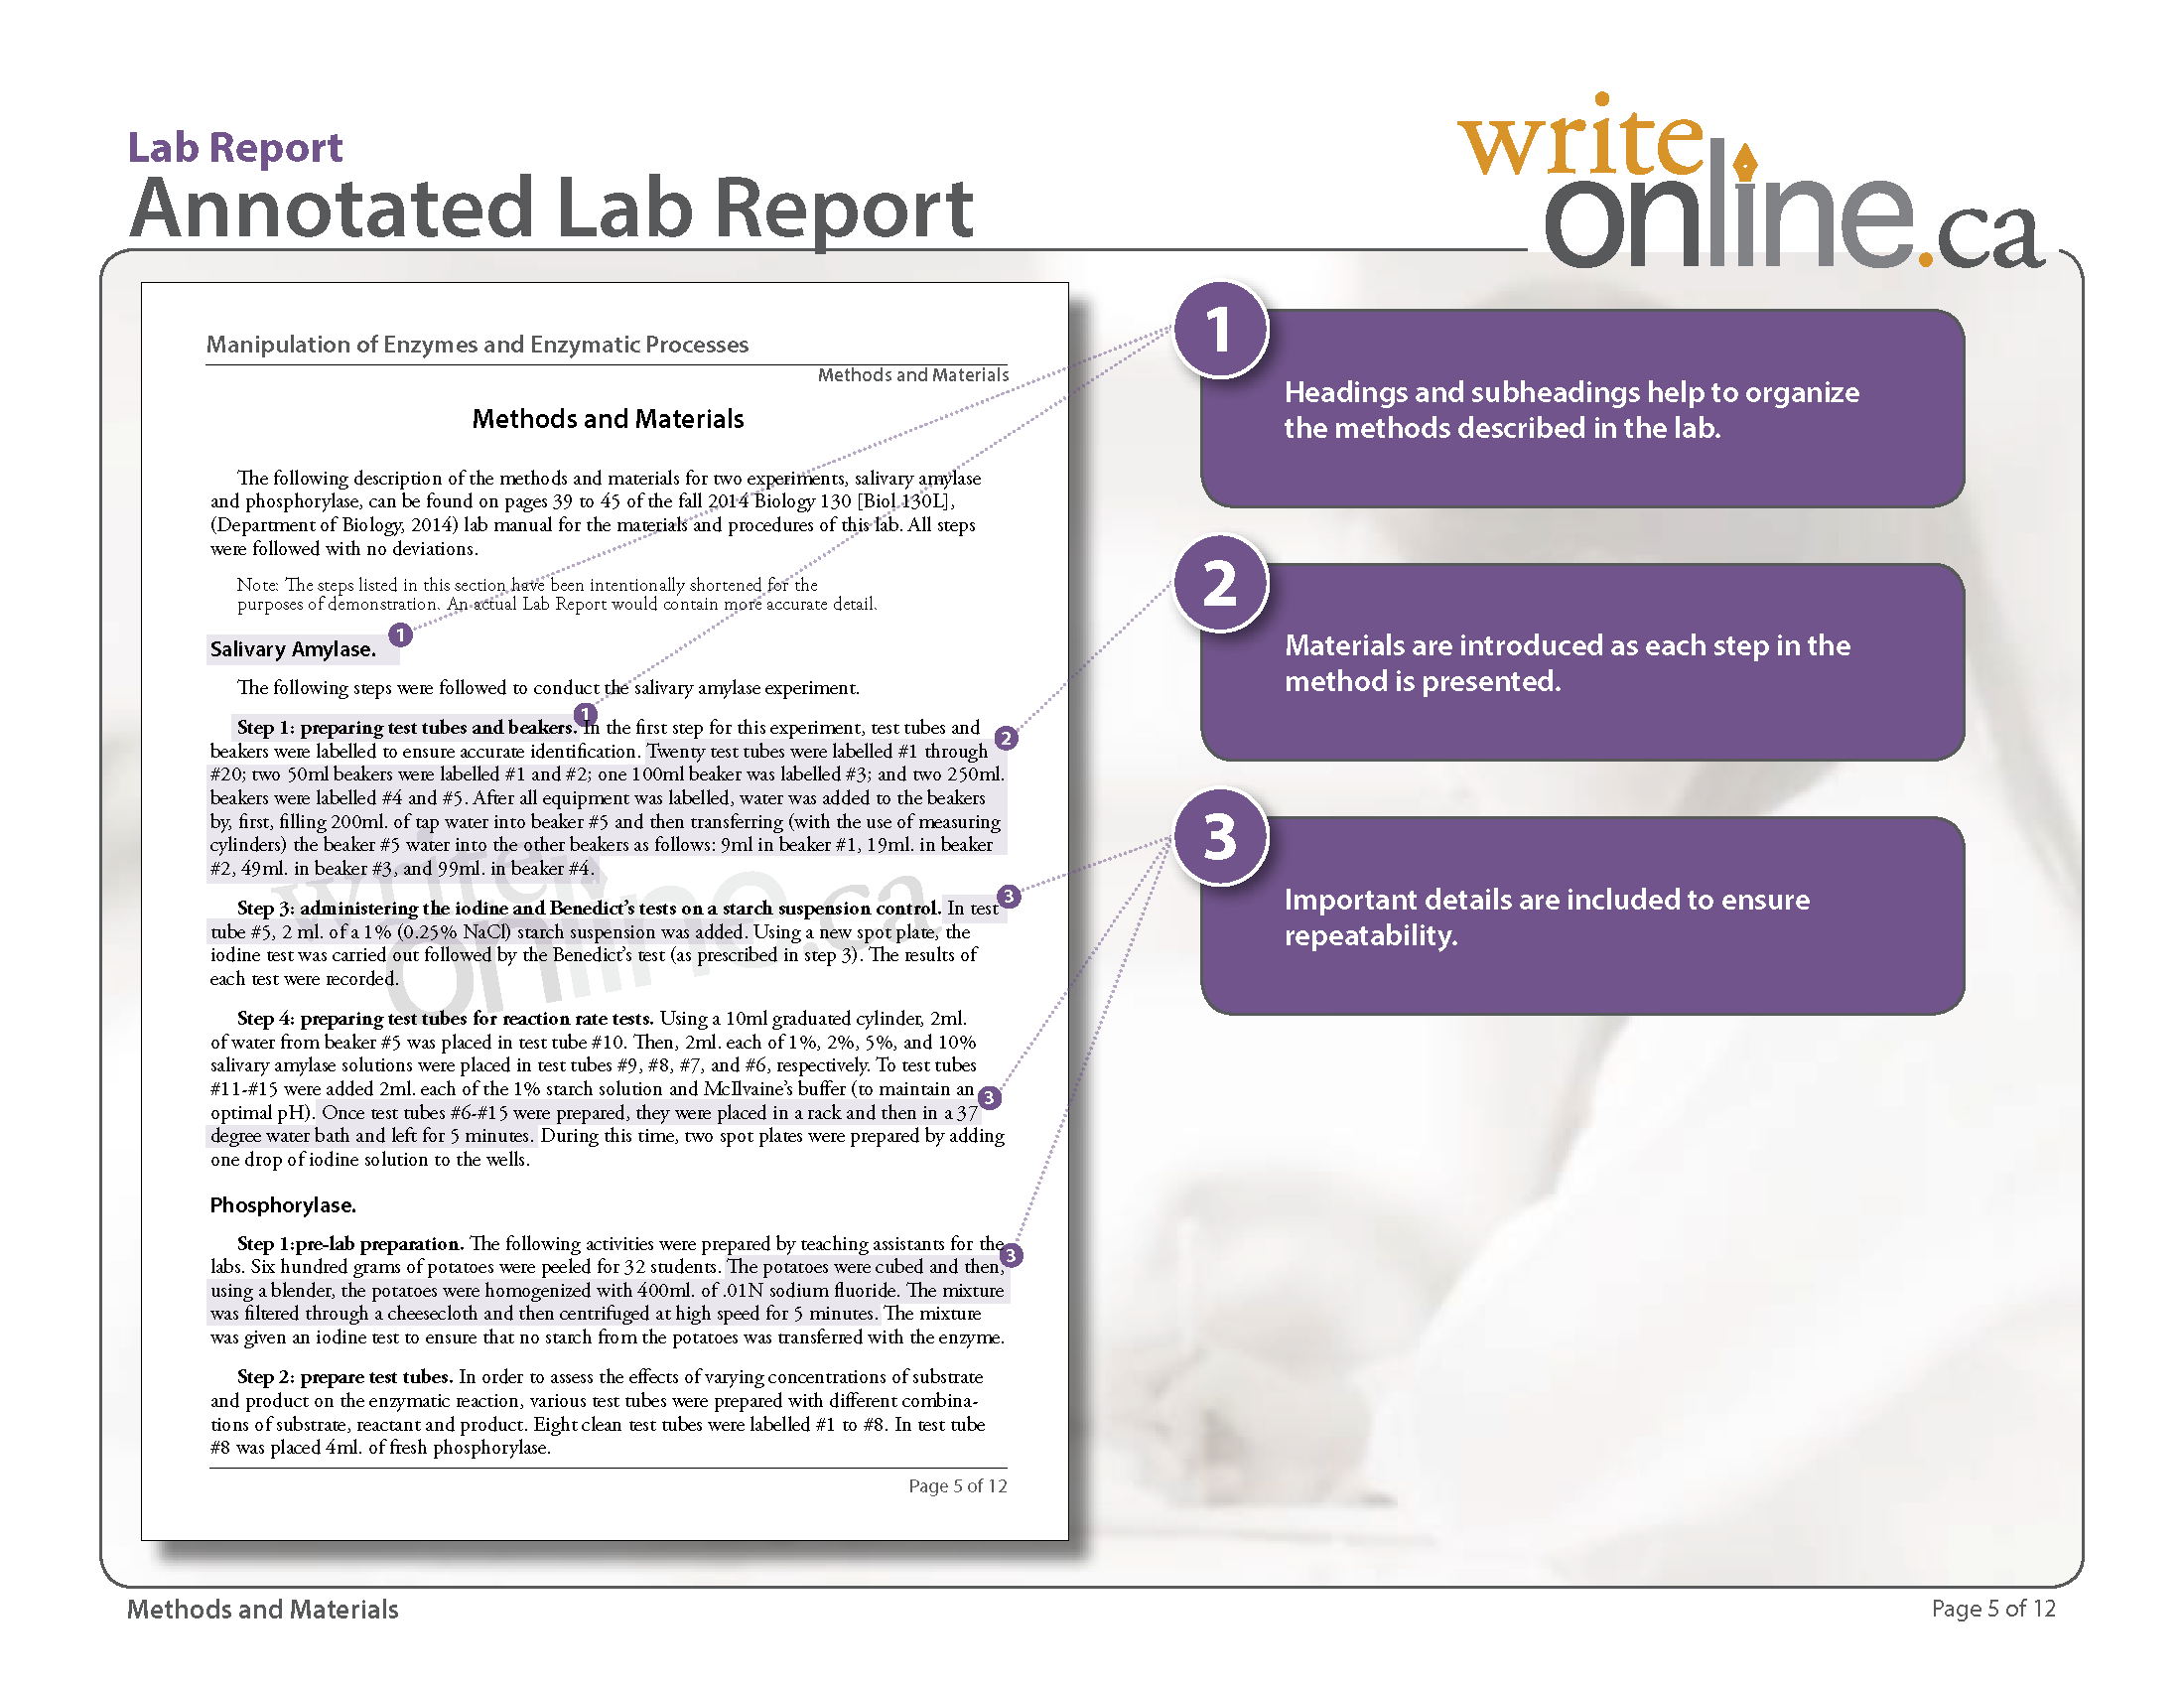 015 Labreport Annotatedfull Page 05 Research Paper How To Write The Methods Section Of Impressive A Pdf Full